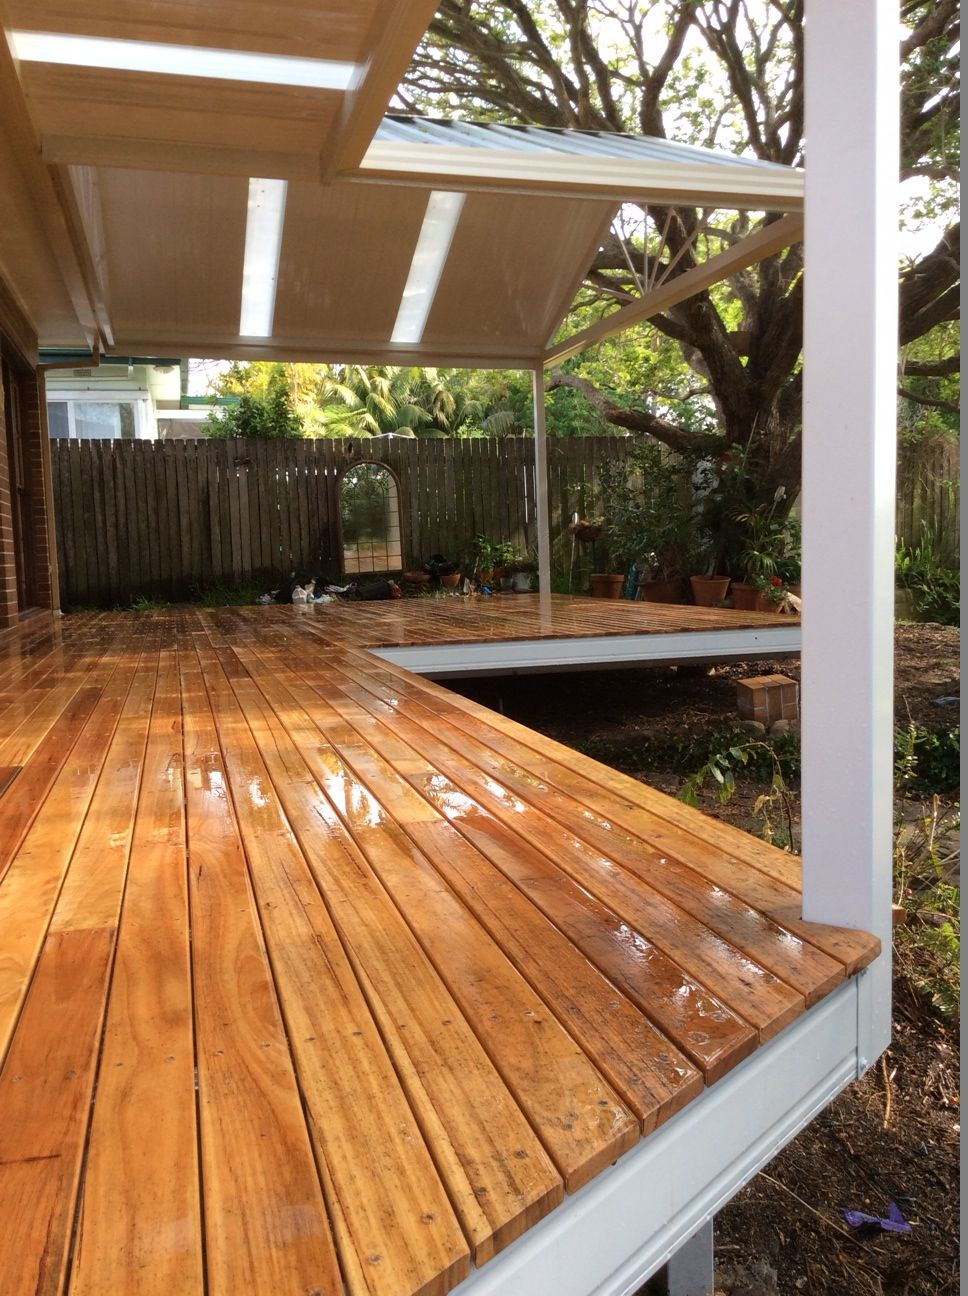 Spantec Boxspan Steel Frame Deck with timber decking boards over ...